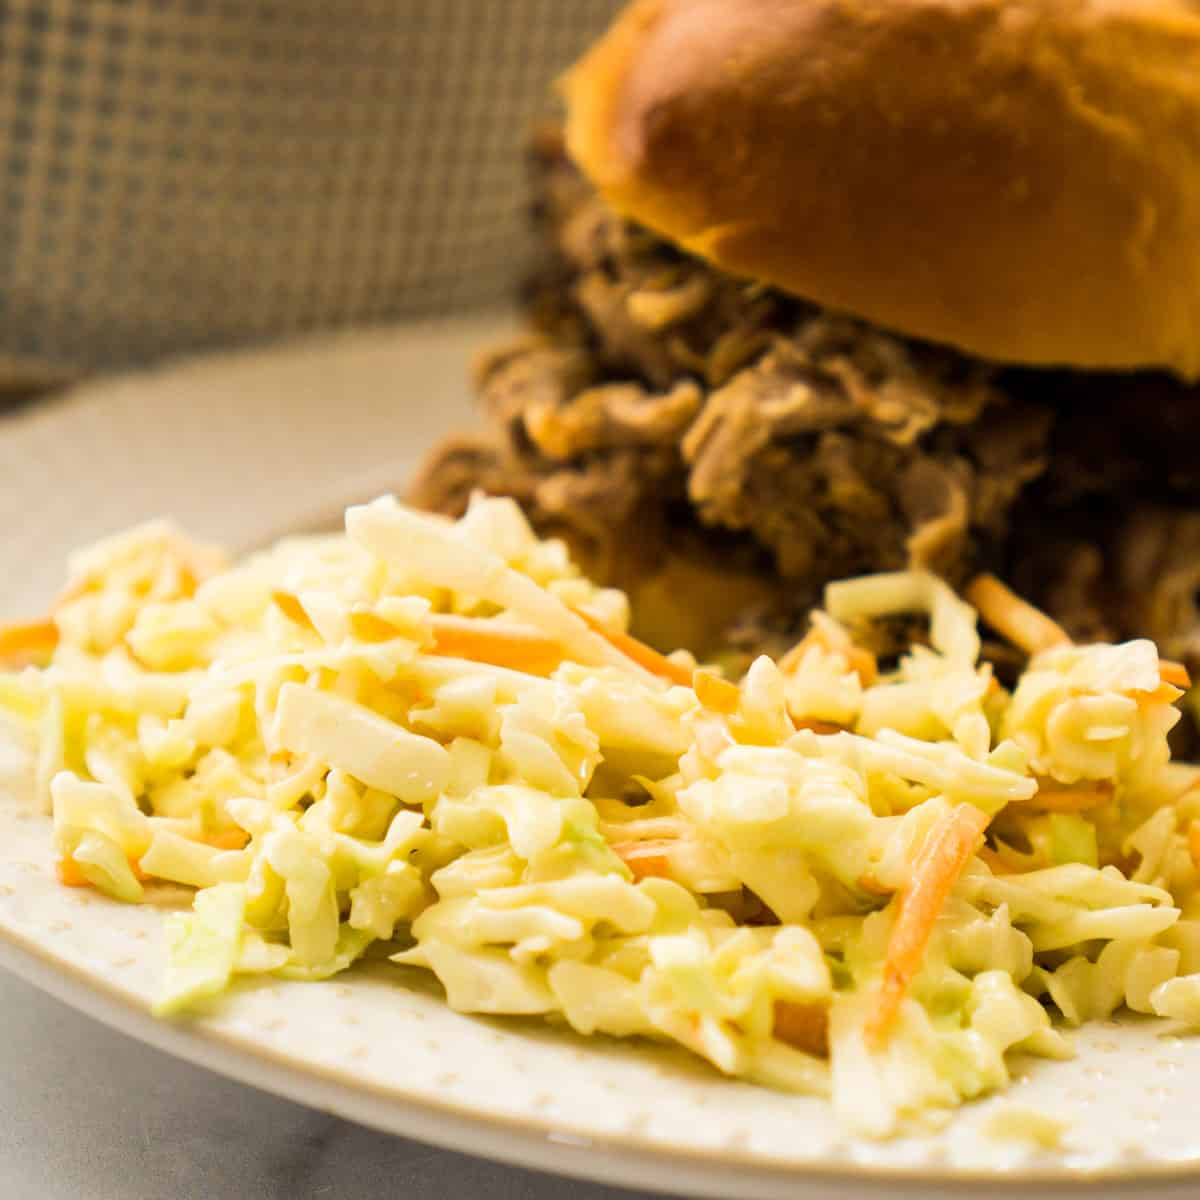 coleslaw and pork sandwich on white plate